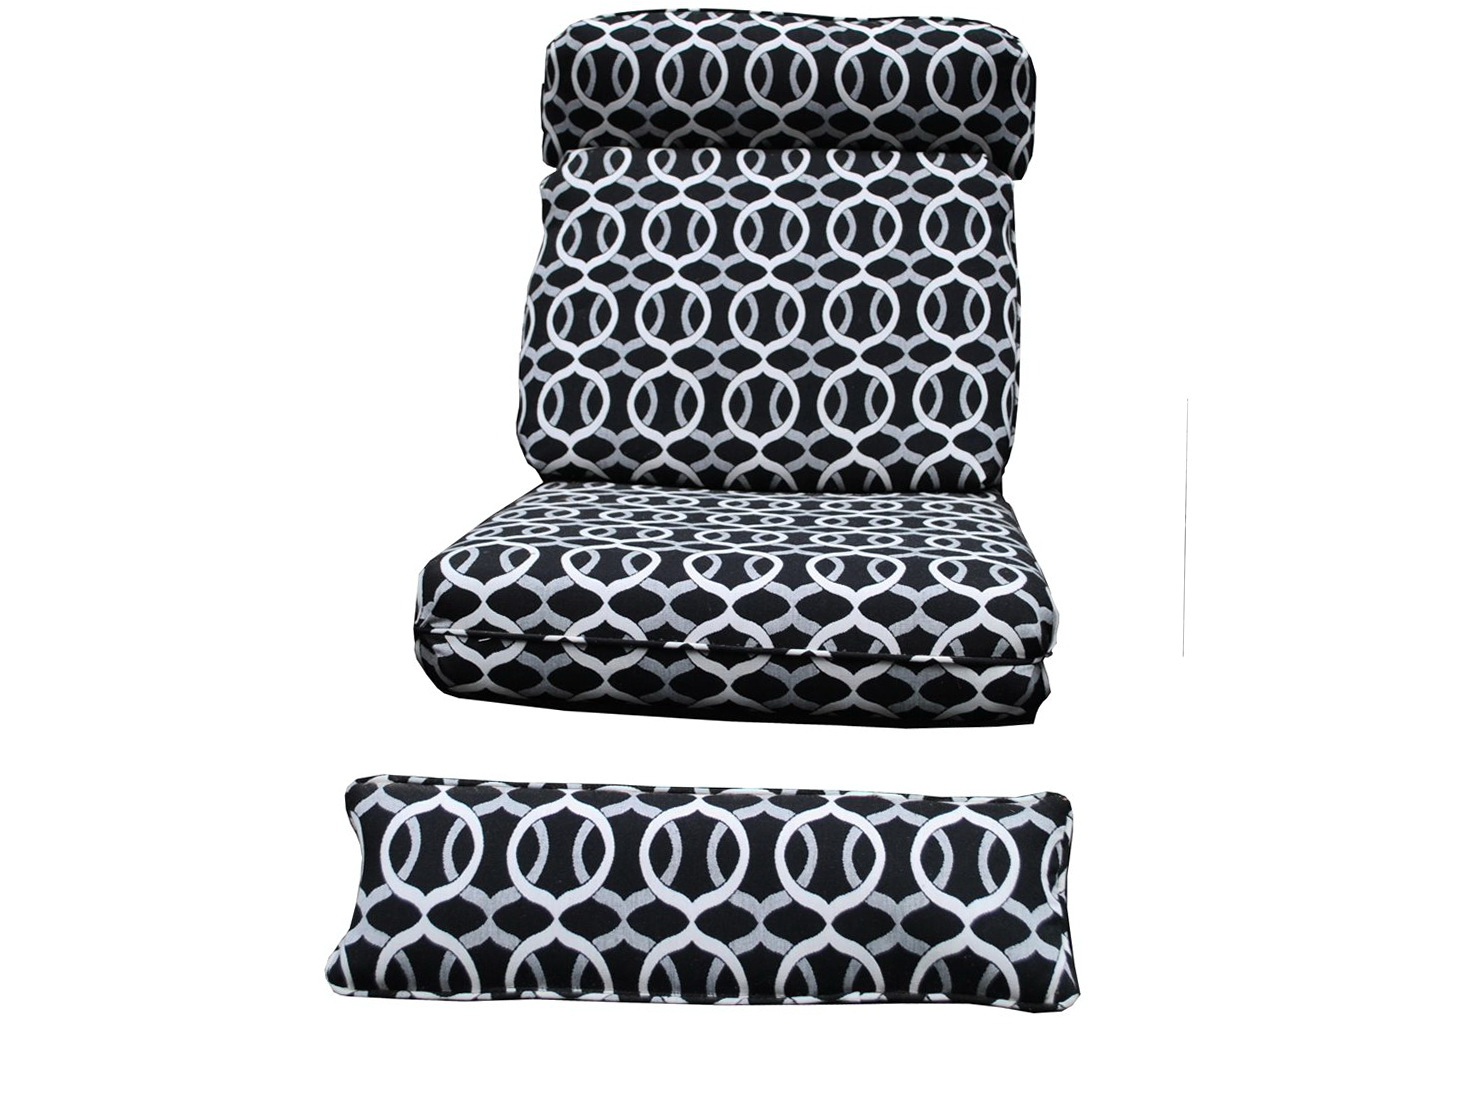 Deep Seat Patio Cushions Replacements